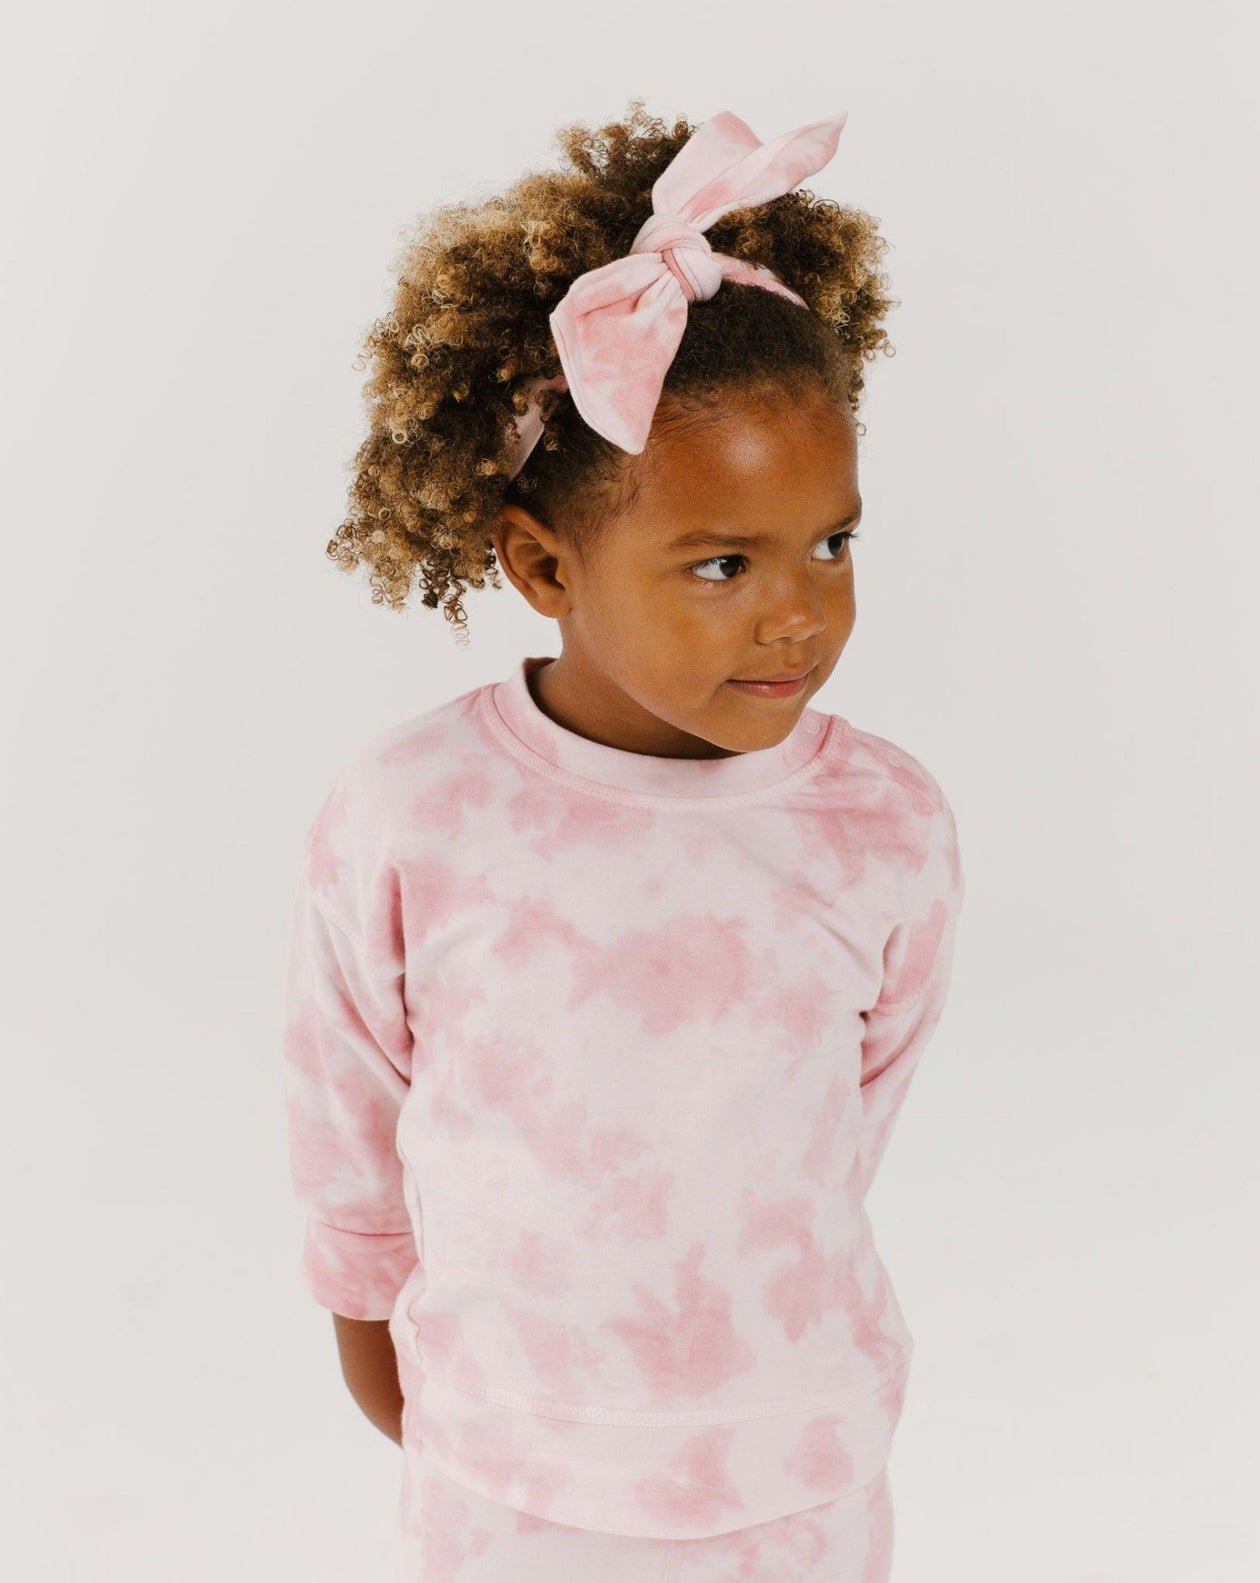 Crew Neck Sweatshirt - Pink Sand | Bohemian Mama Littles - Kids' Clothing